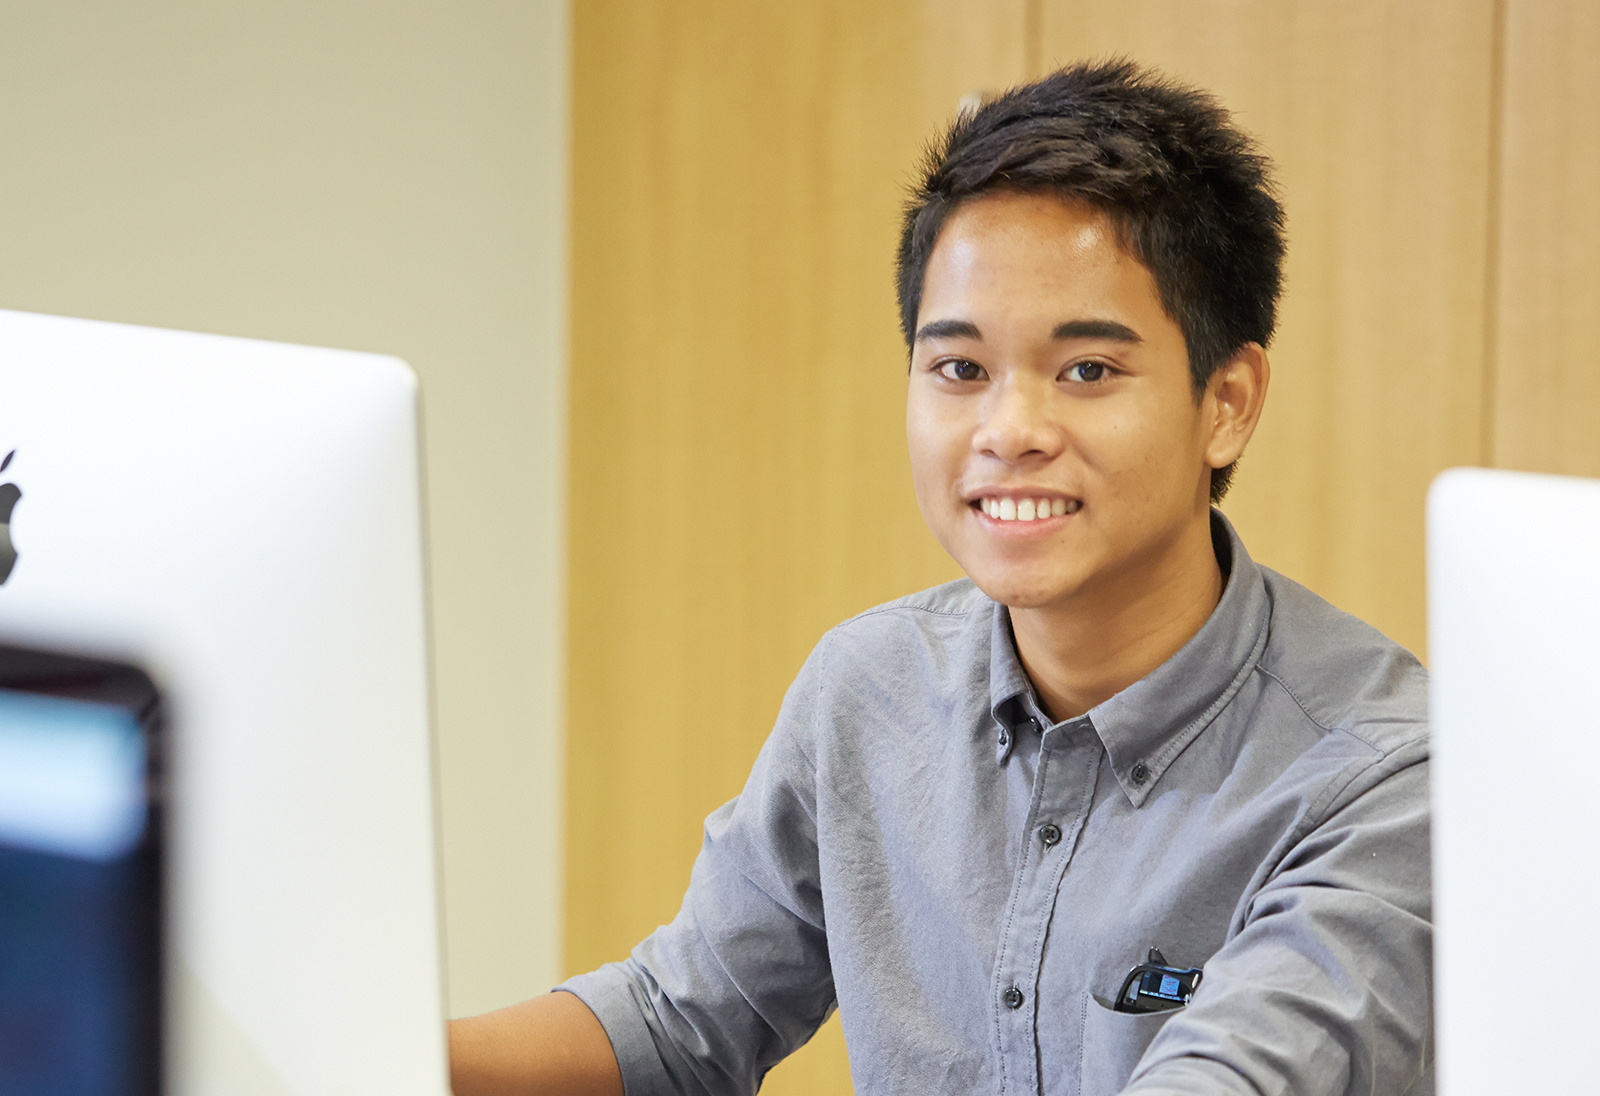 Student sitting in front of a desktop computer.